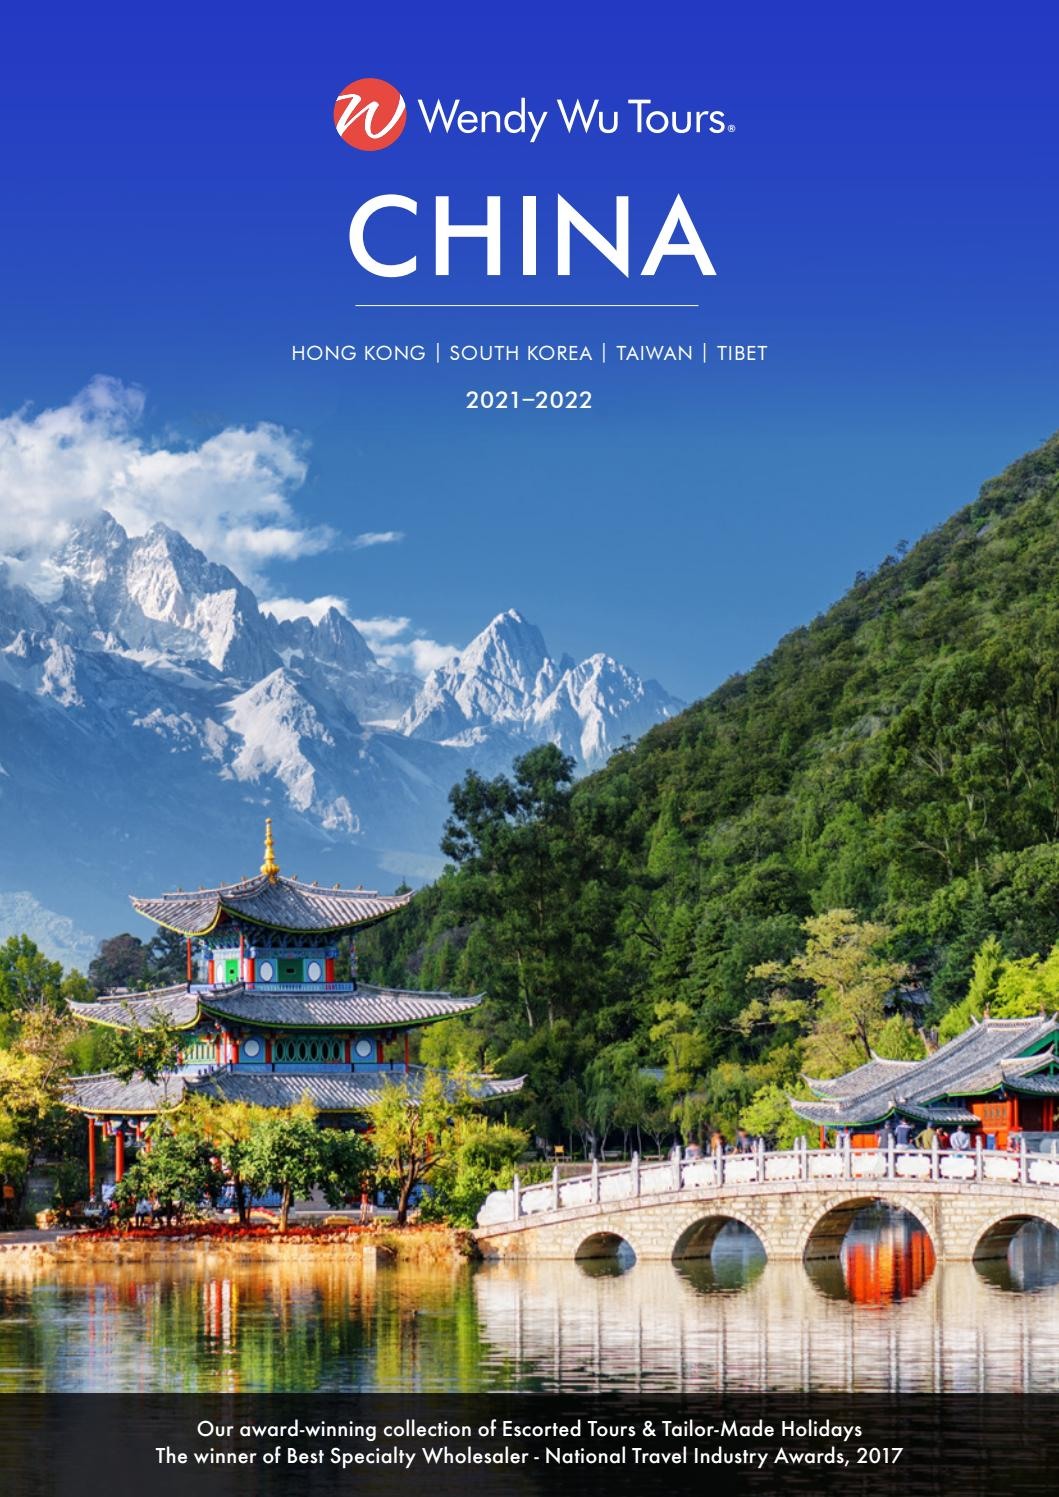 China Brochure 2021 2022 Au By Wendy Wu Tours Issuu